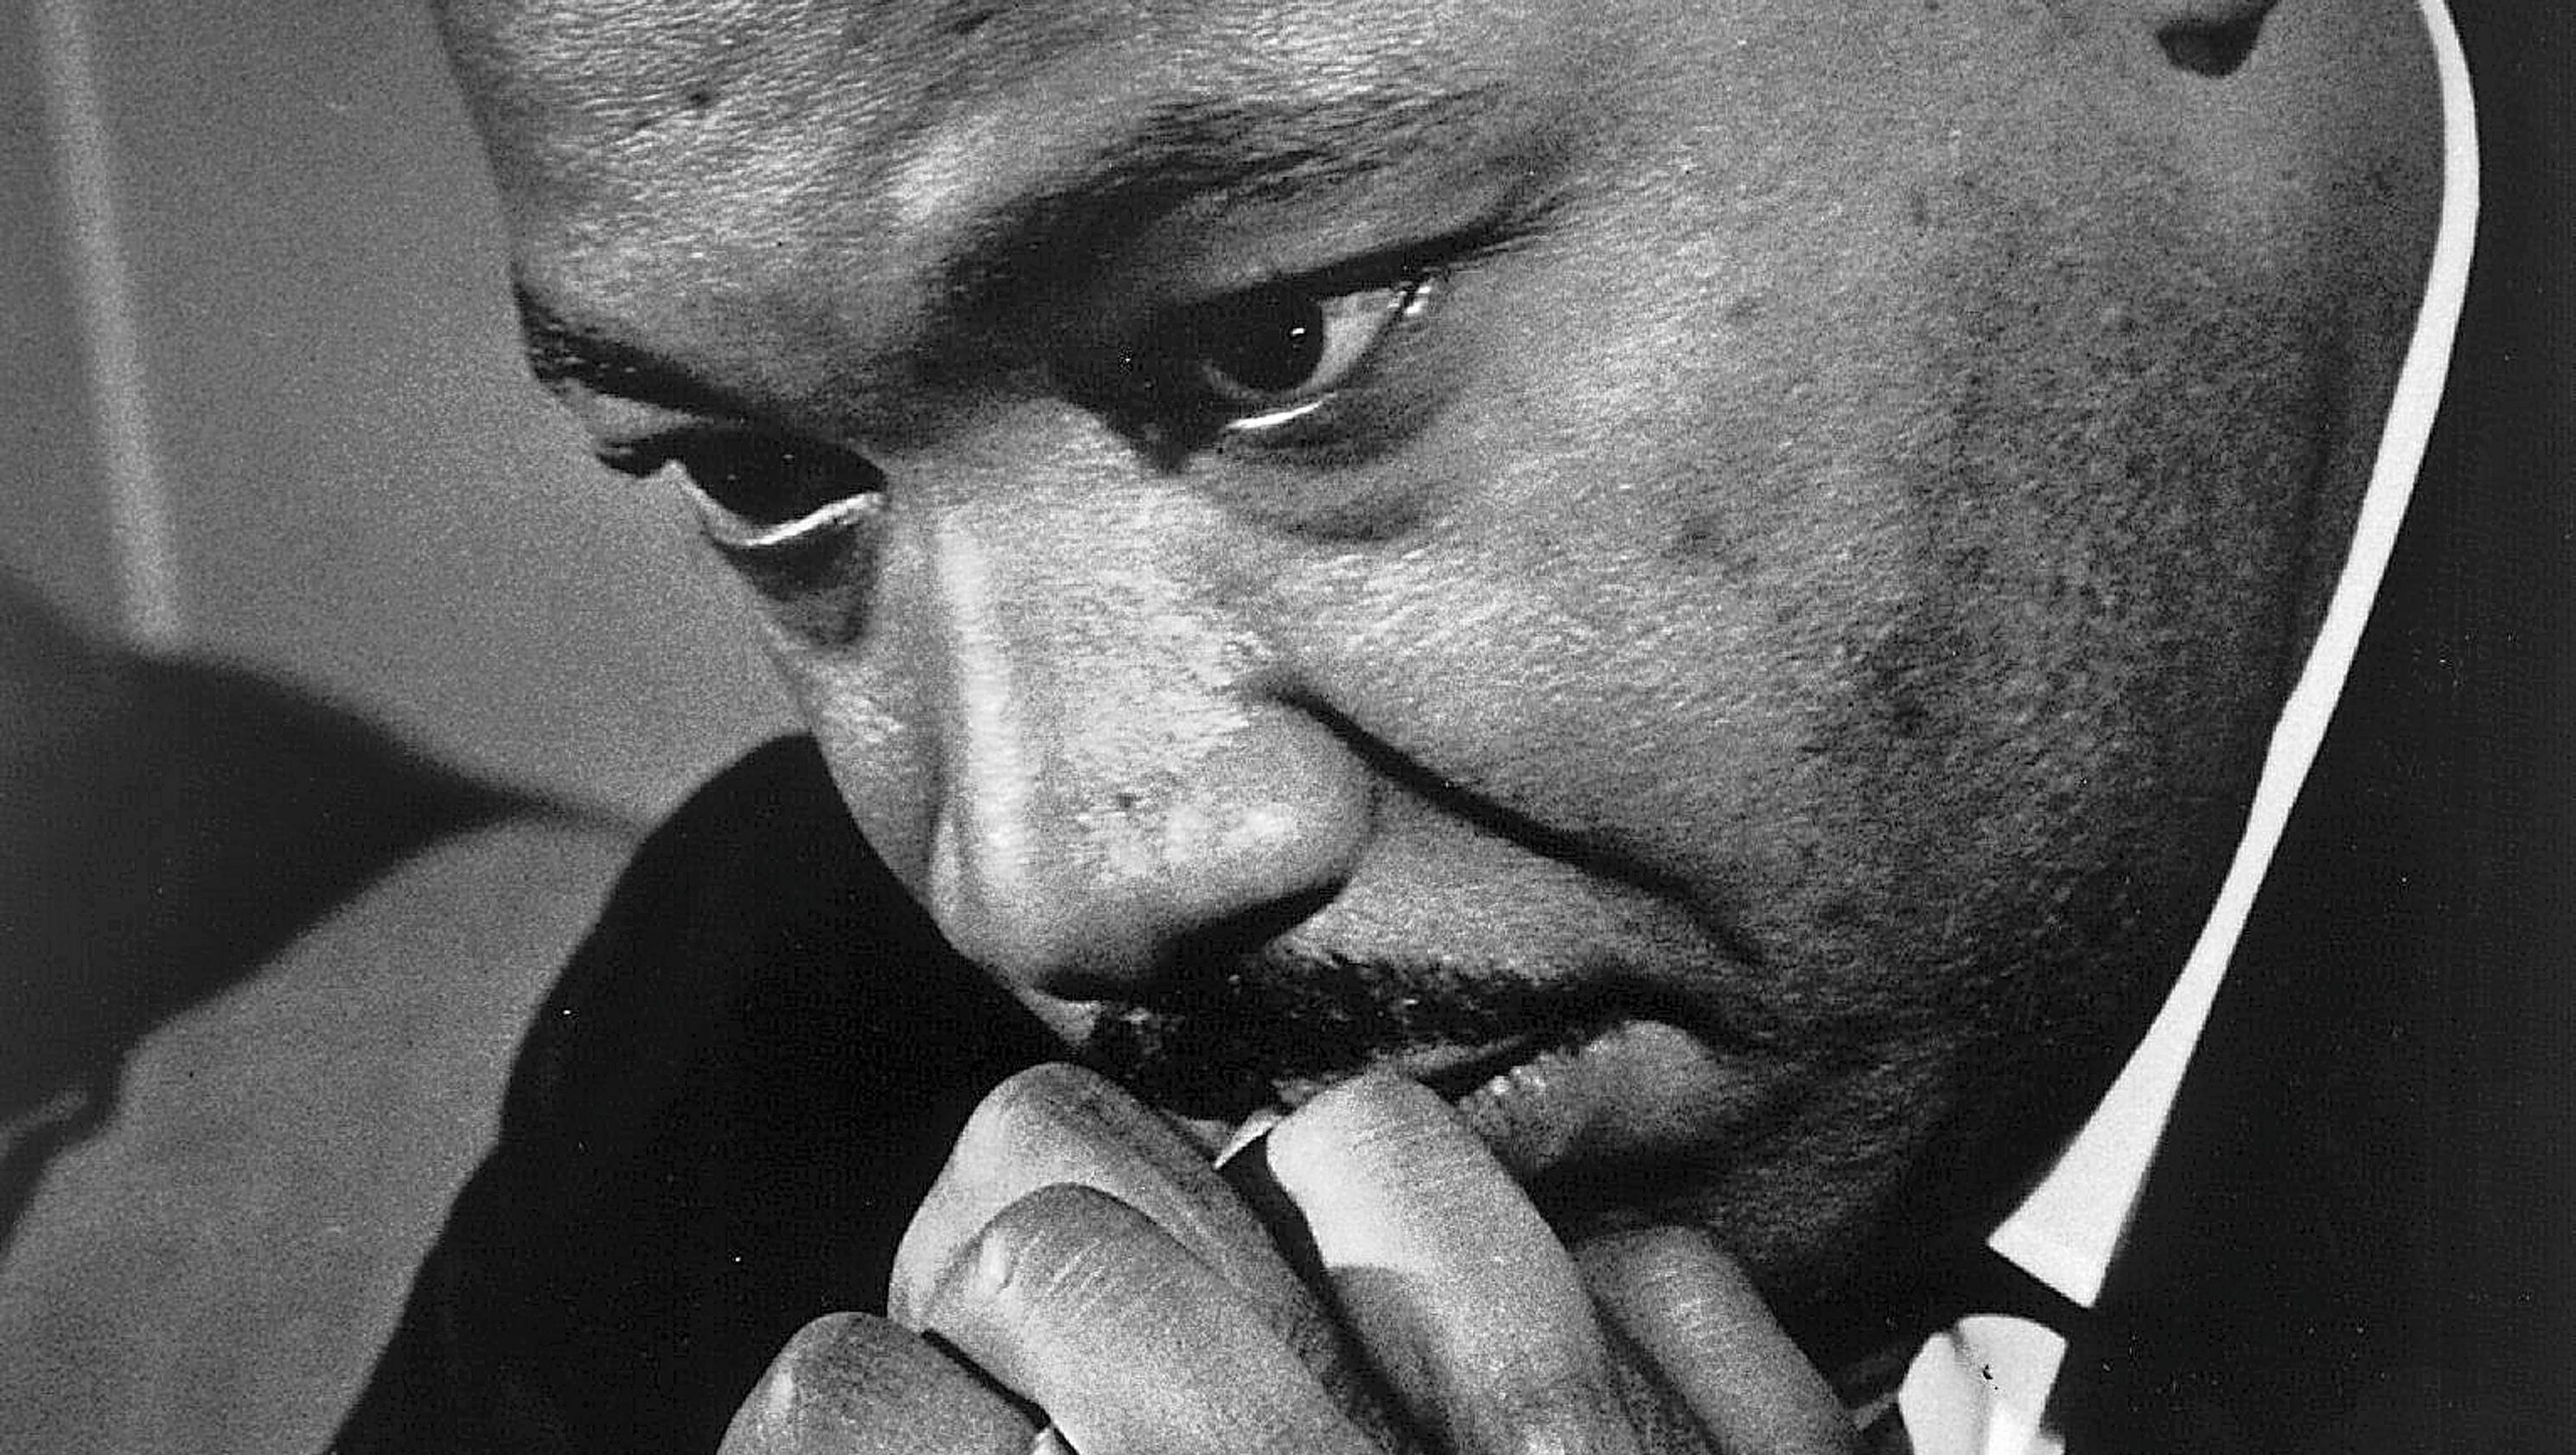 5 Facts About Martin Luther King Jr You May Not Know